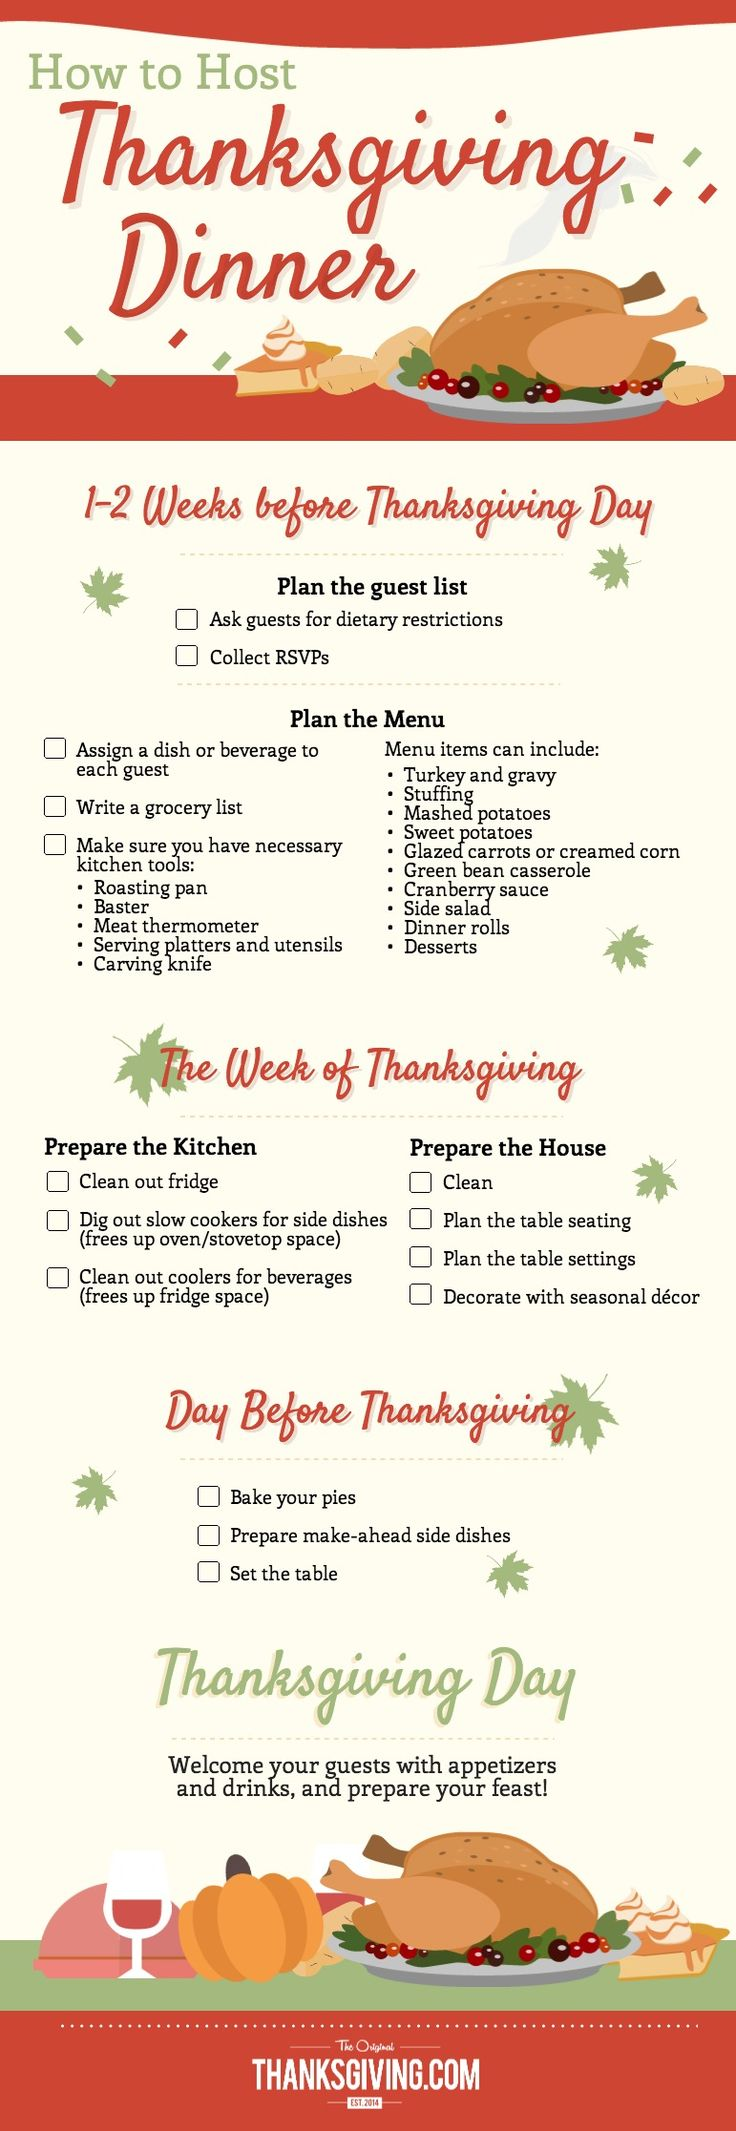 Timeline for hosting Thanksgiving dinner from Thanksgiving.com